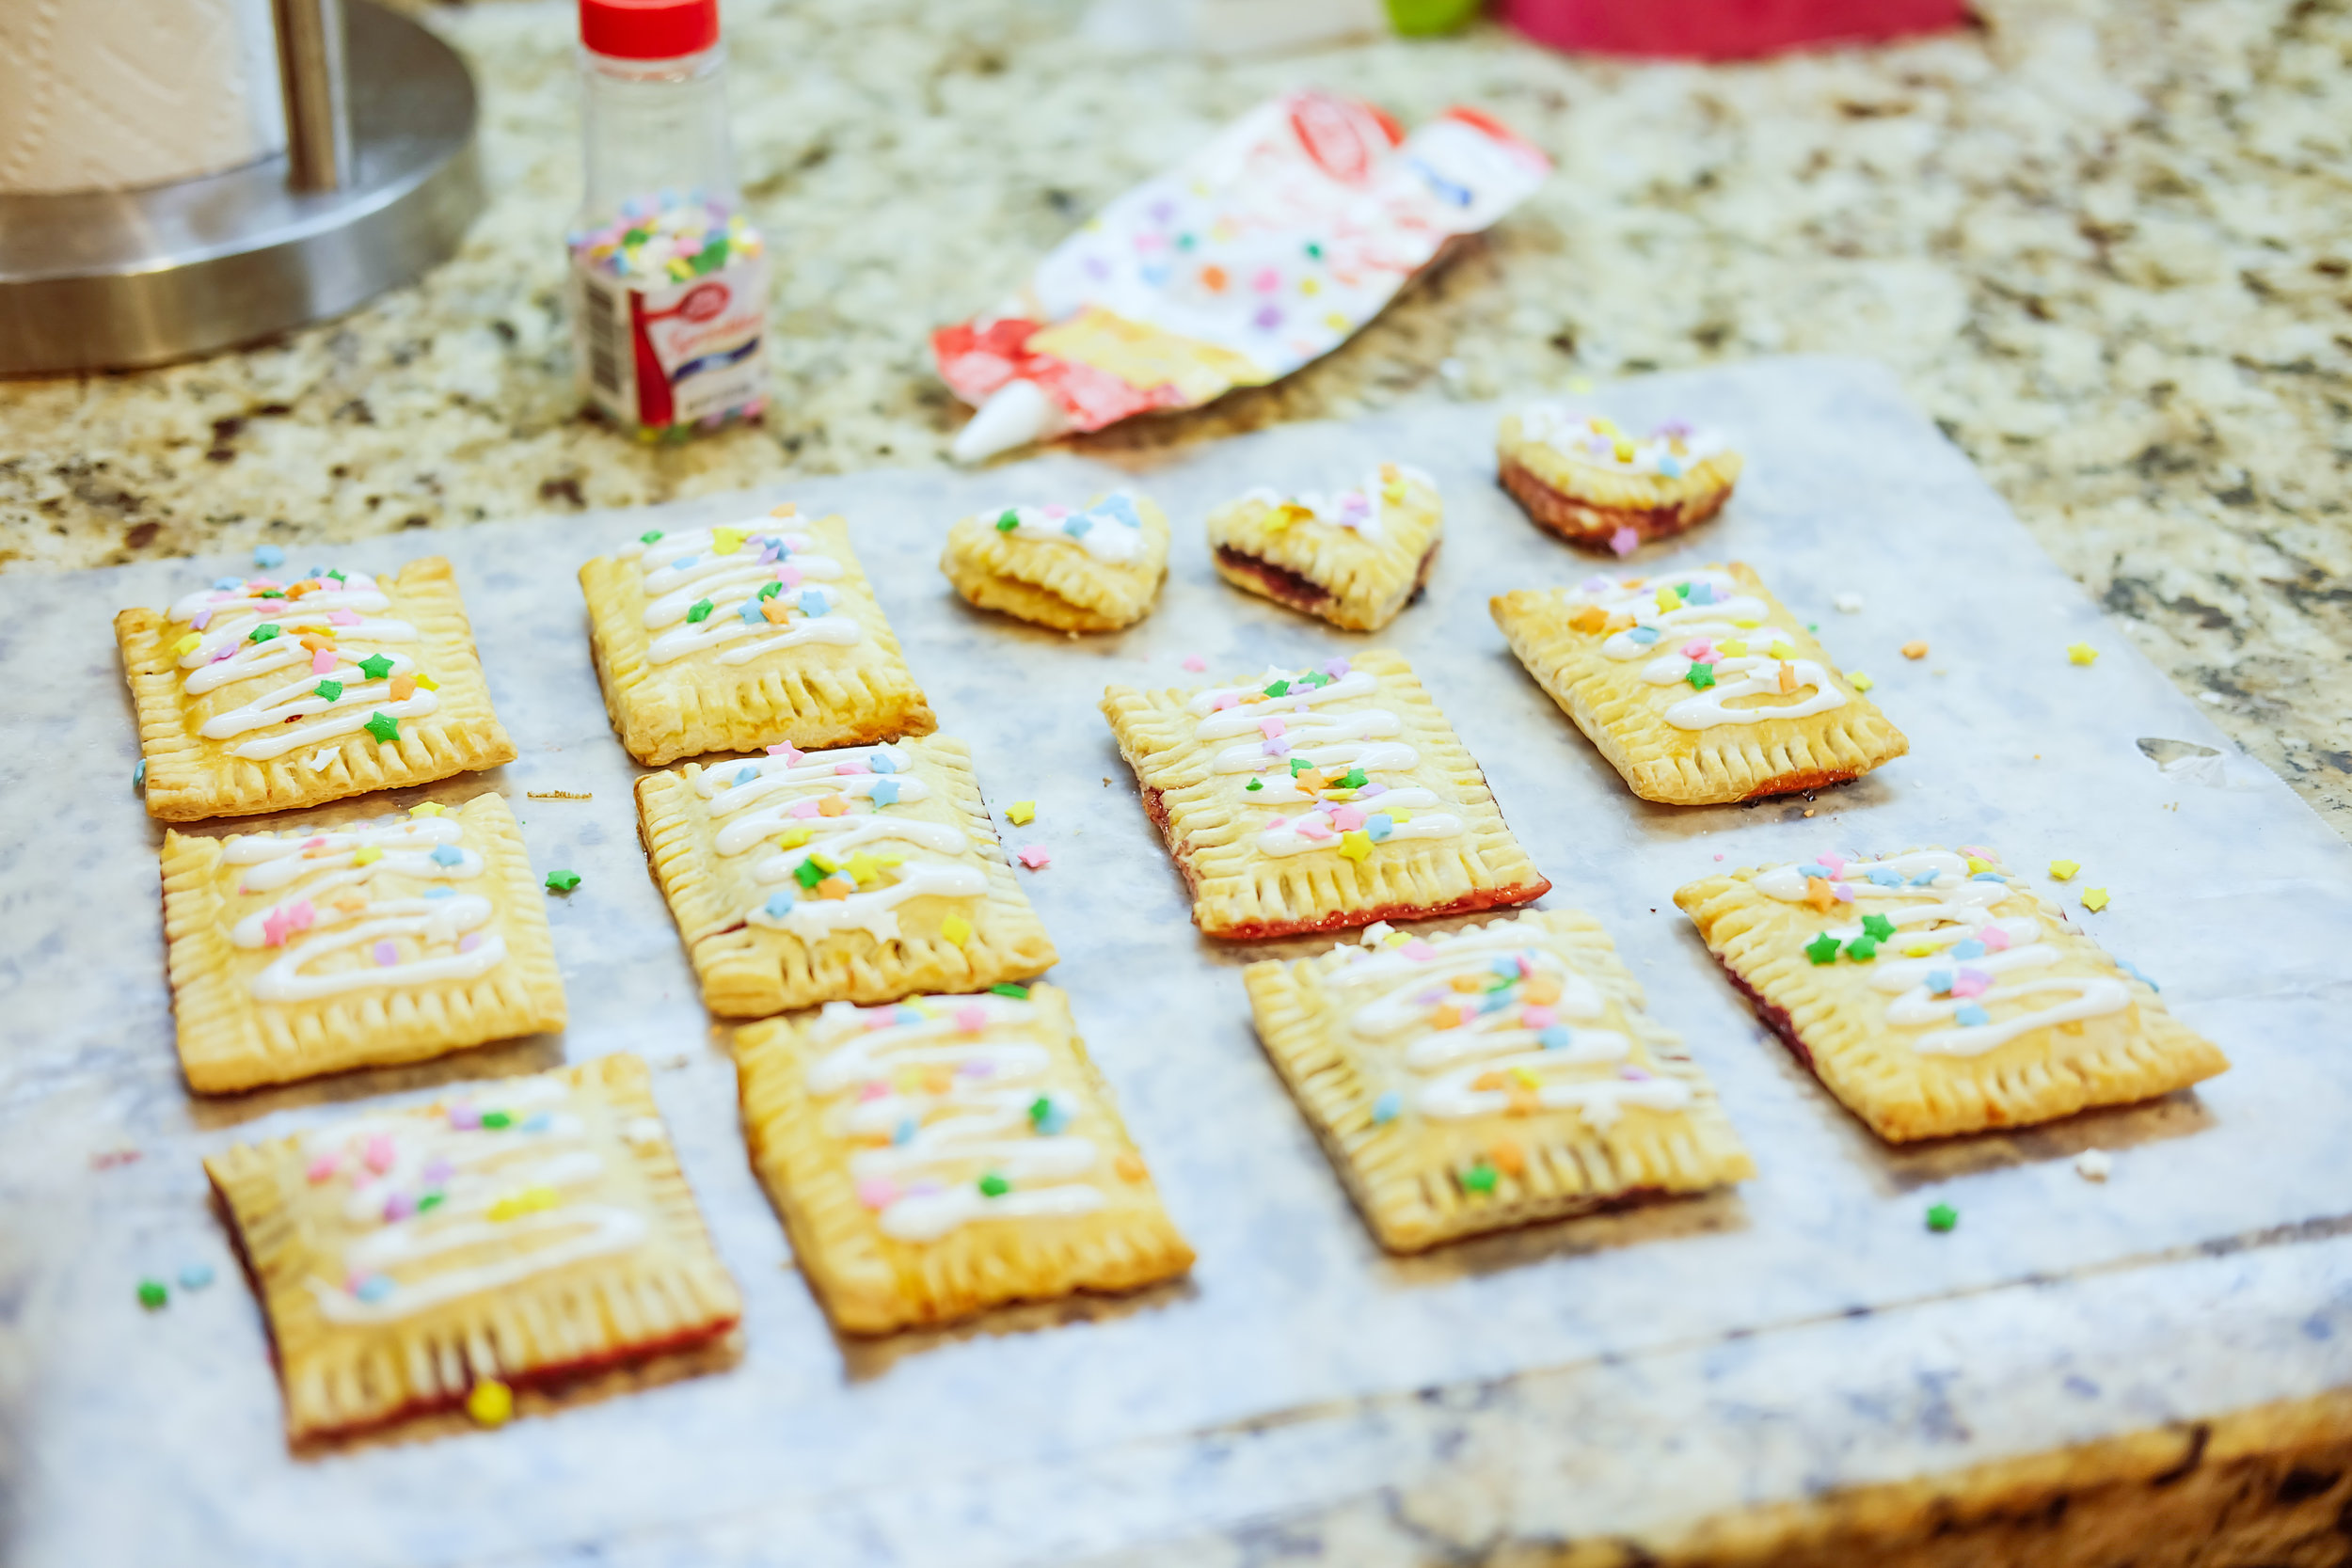 Once they're completely cooled, drizzle a frosting or icing of your choice over the top, and sprinkle some fun things on the drizzle!